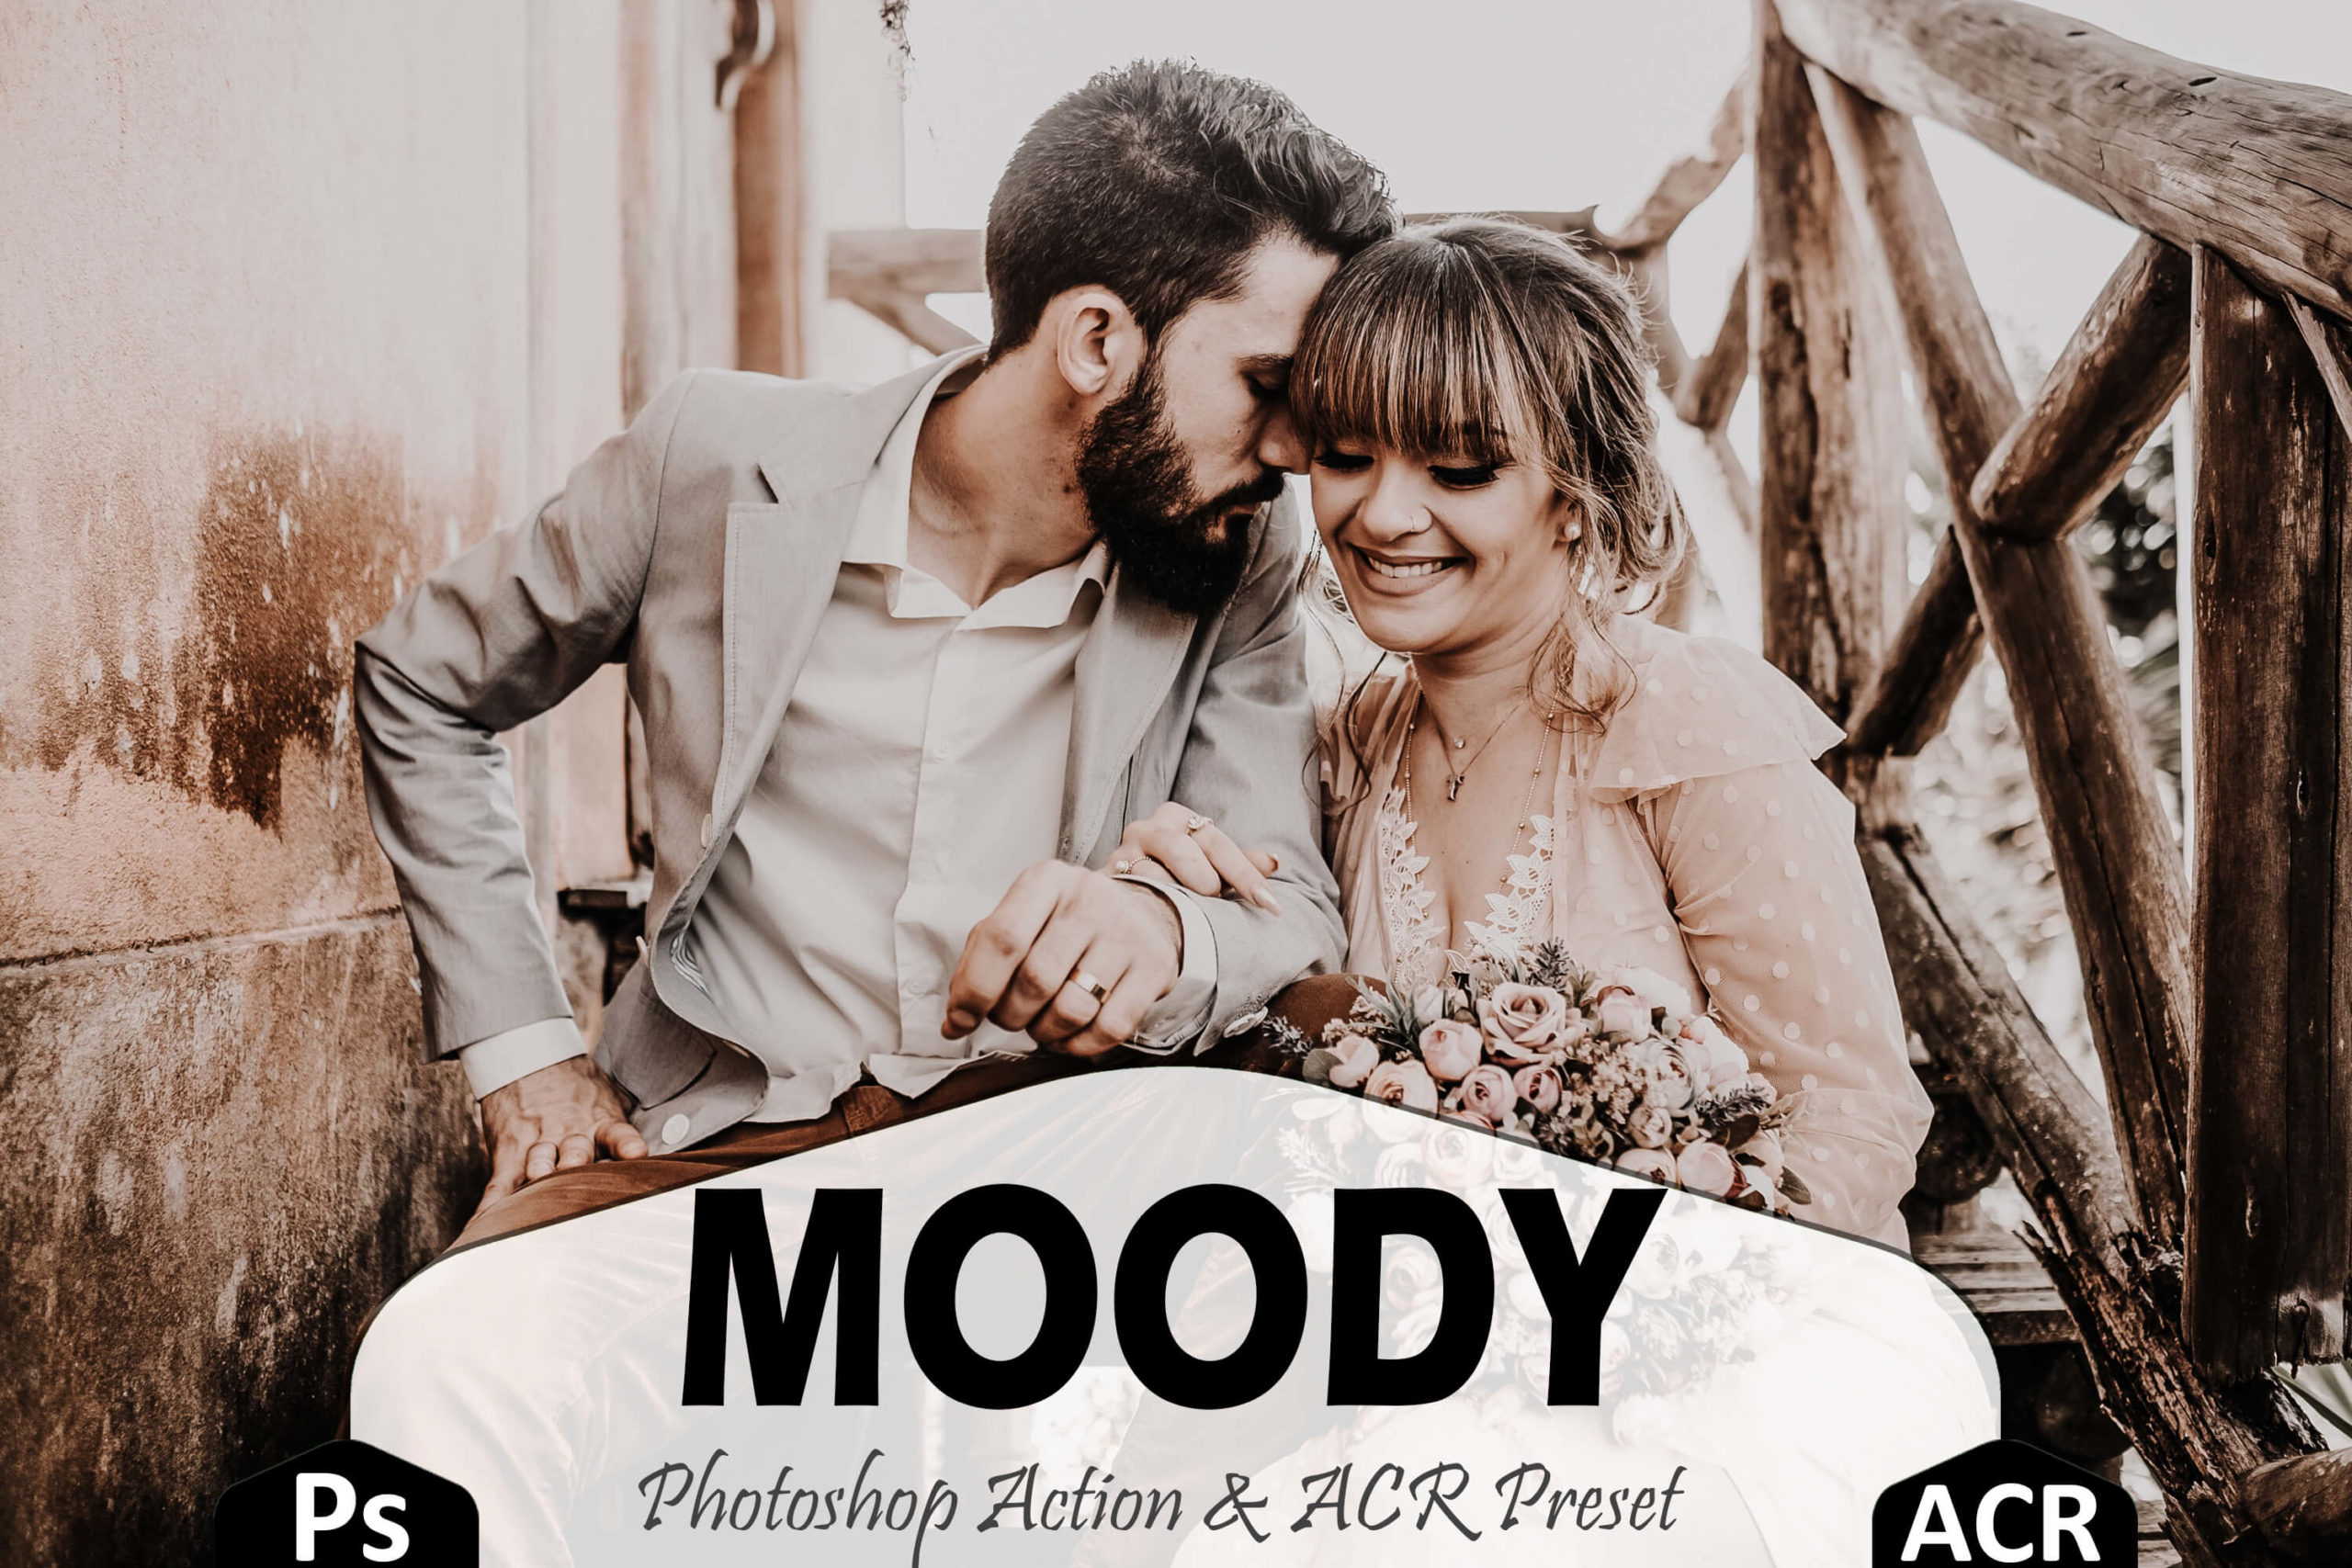 10 moody photoshop actions